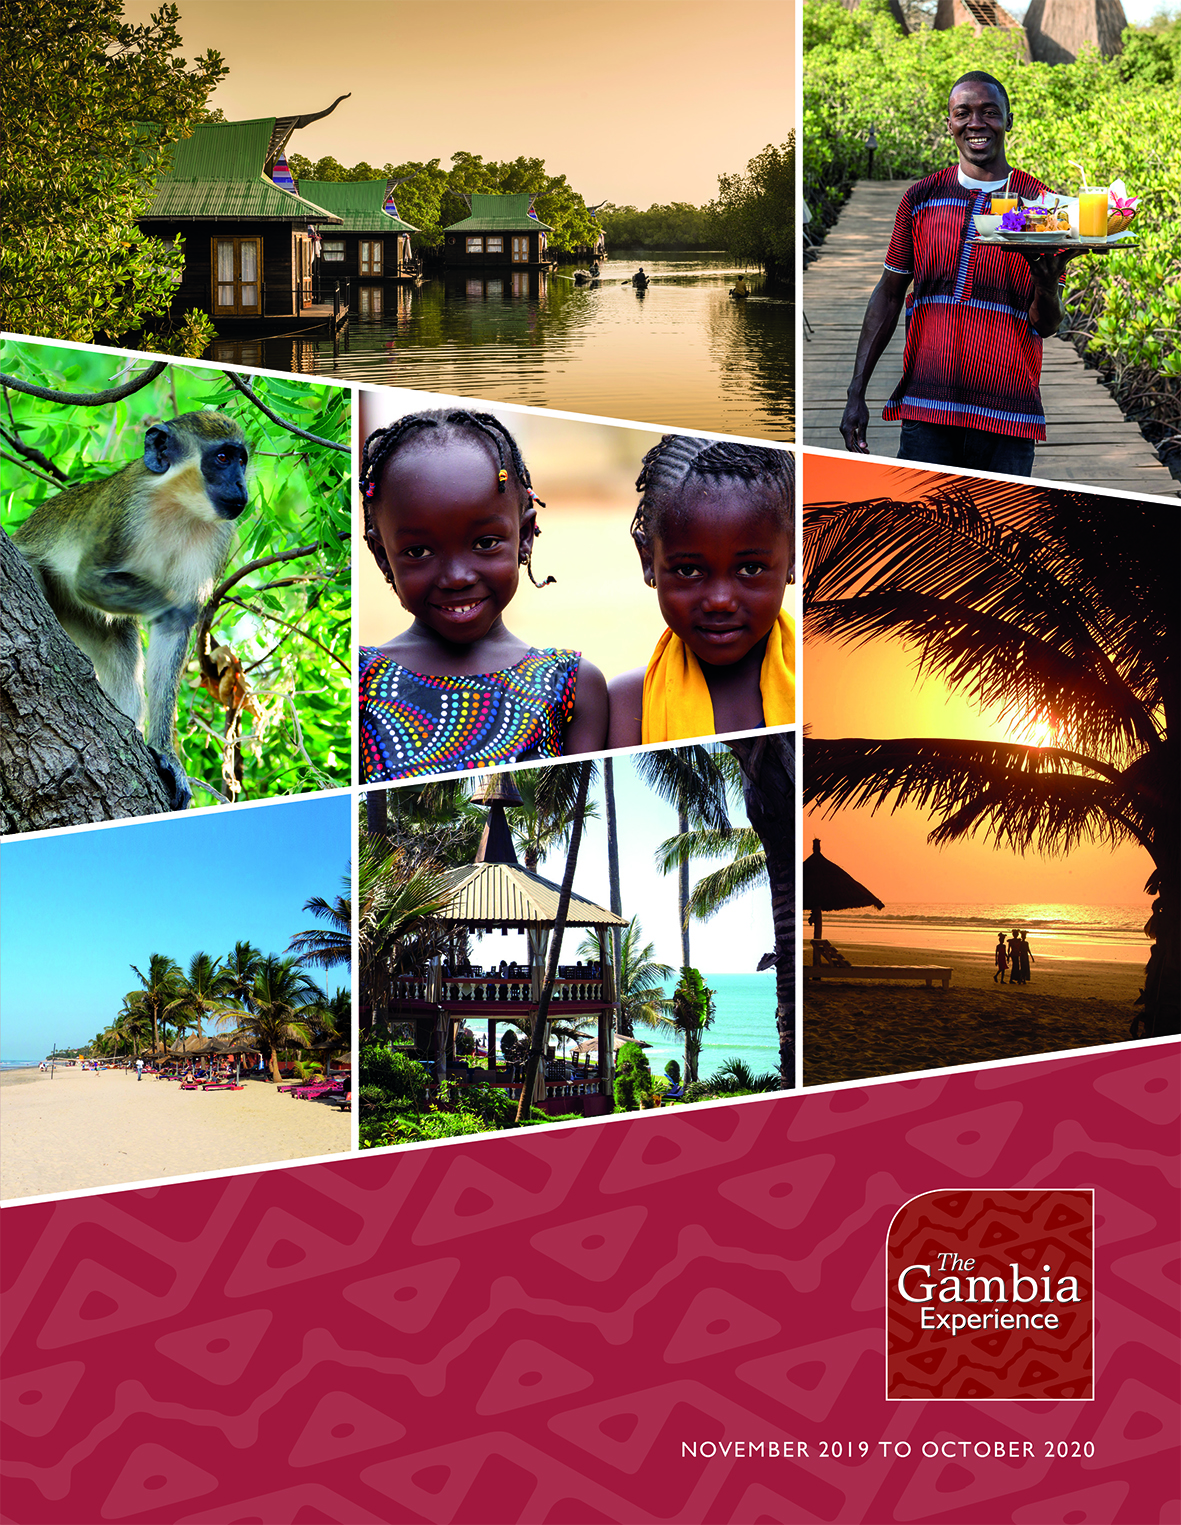 The Gambia Experience 19-20